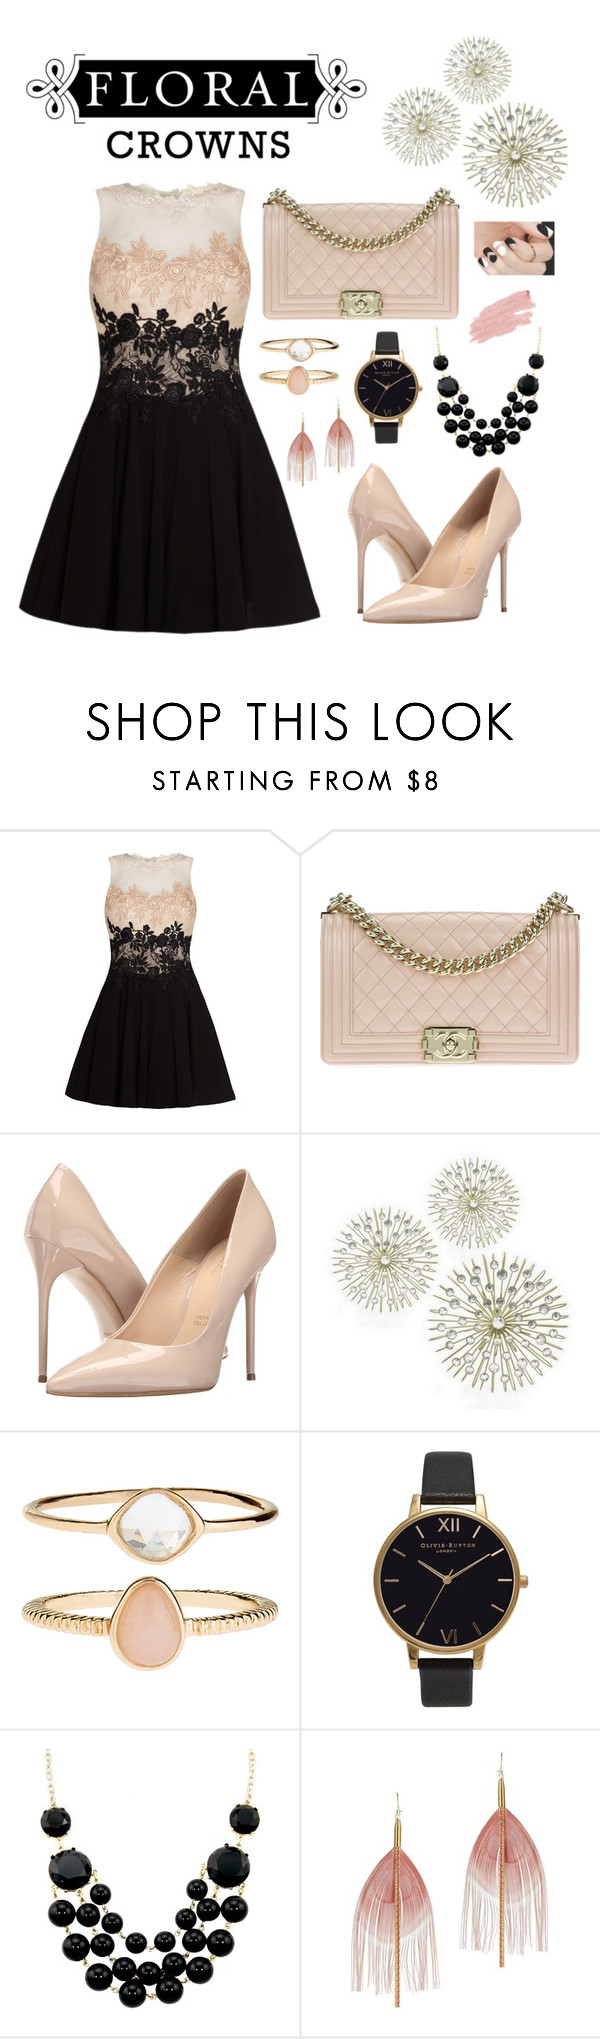 """""""FLORAL Crowns"""" by lamodaesvida-02 ❤ liked on Polyvore featuring Chanel, Massimo Matteo, Accessorize, Olivia Burton, Serefina and Jane Iredale"""